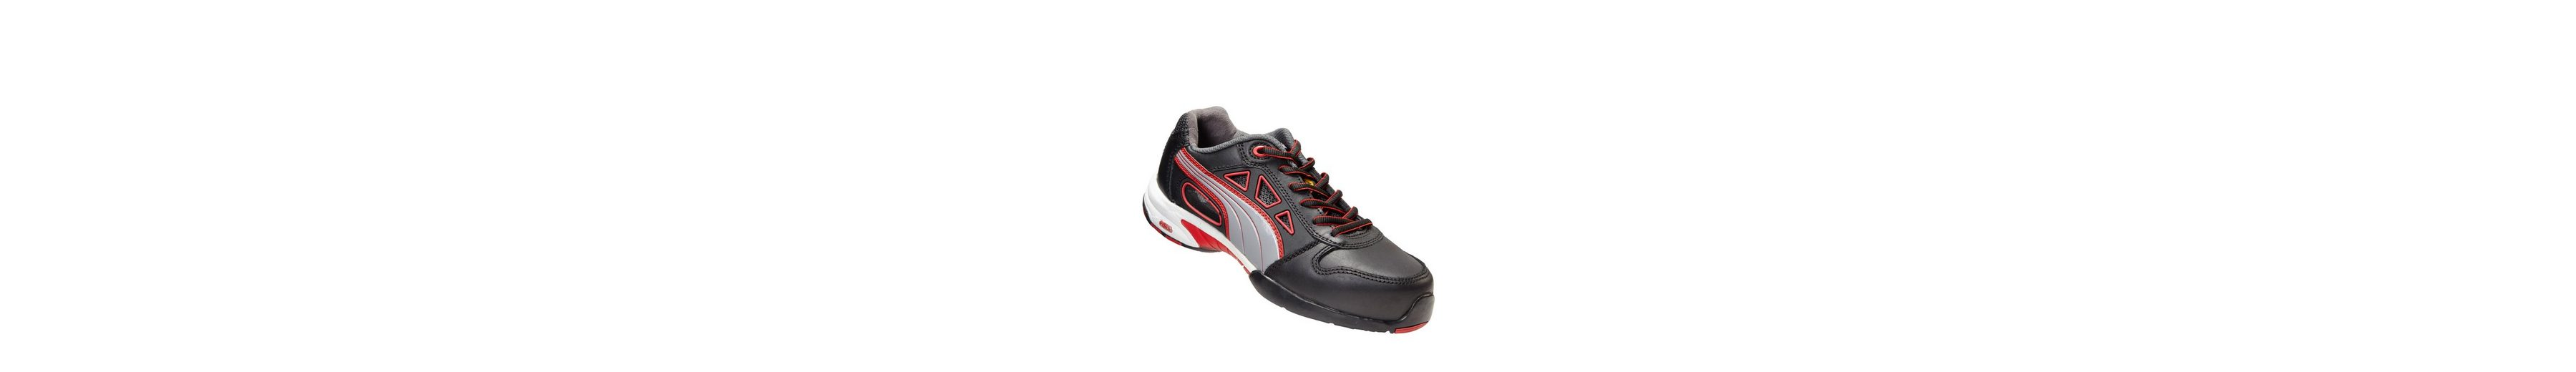 PUMA Damen Sicherheitssandale Stream Red WNS Low S1 HRO SRC